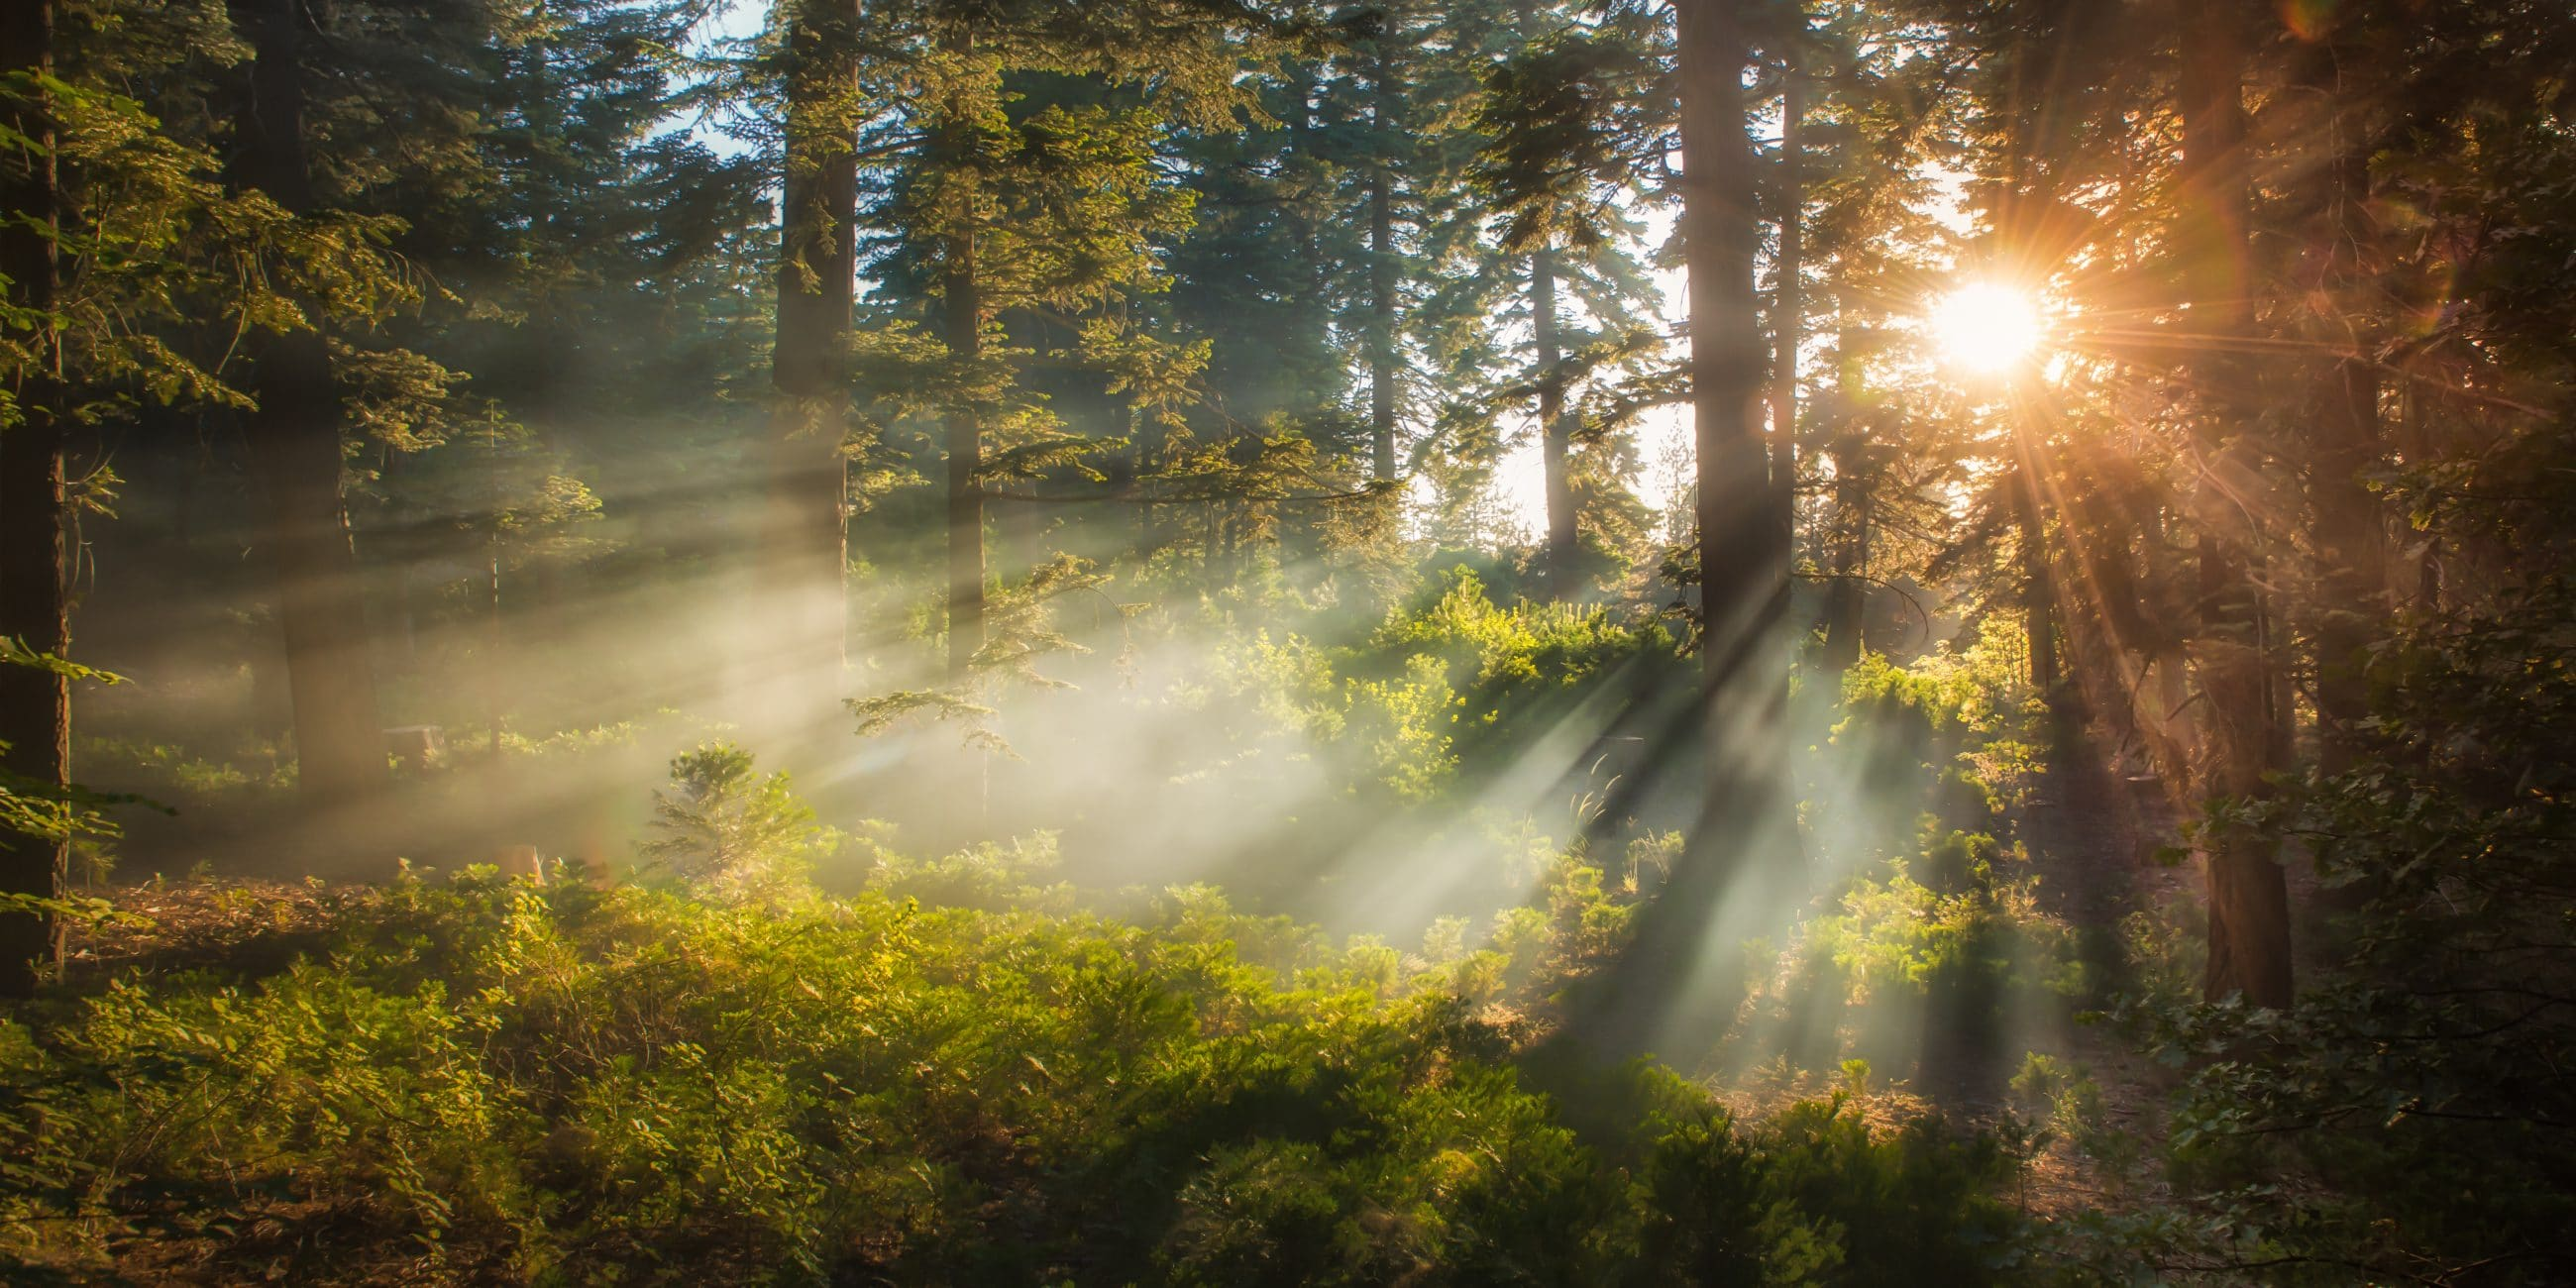 Sunlight streaming through trees, San Bernardino National Forest, California, USA